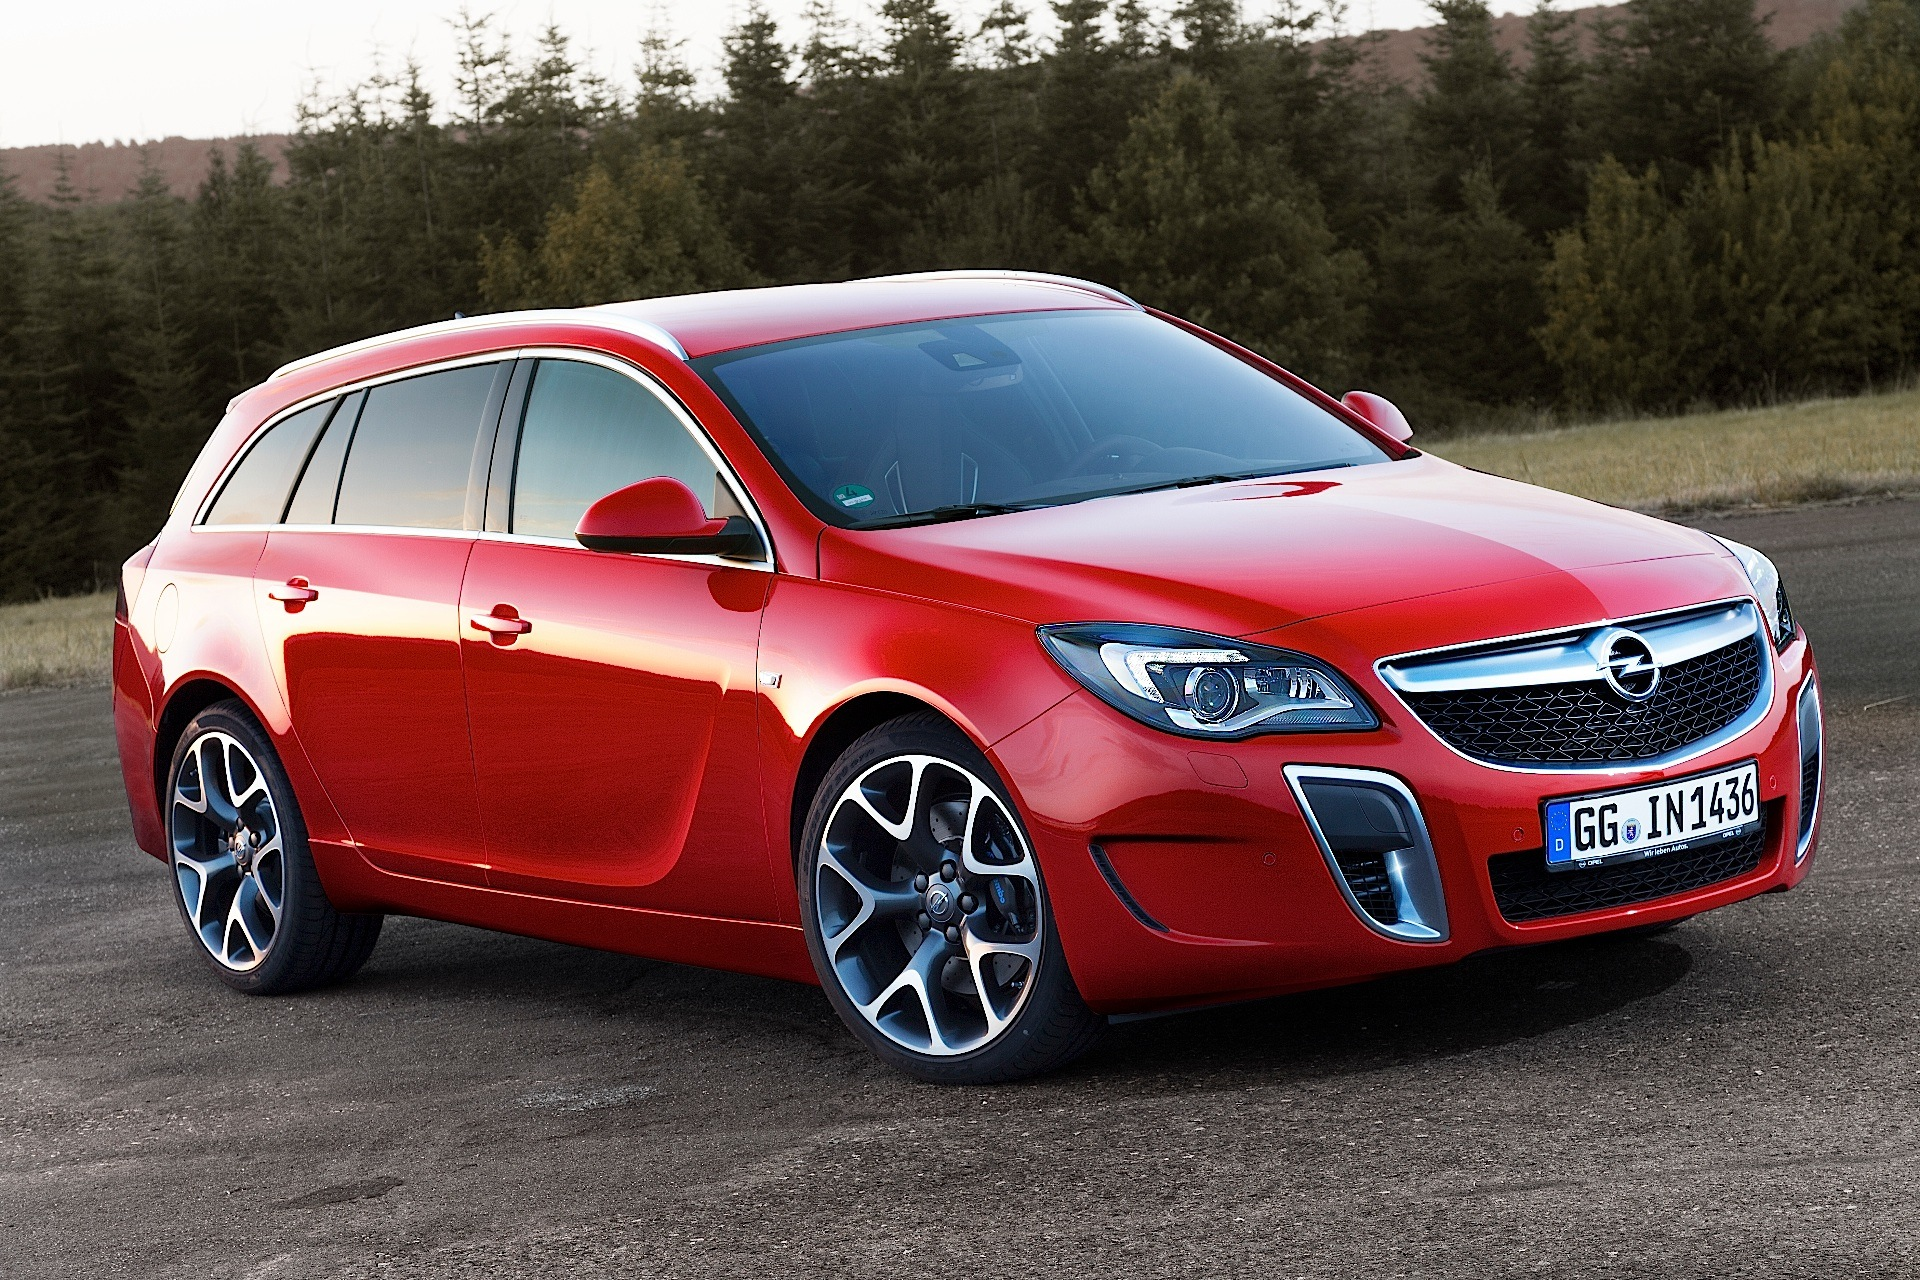 opel insignia sports tourer opc specs photos 2013 2014 2015 2016 2017 2018 2019. Black Bedroom Furniture Sets. Home Design Ideas